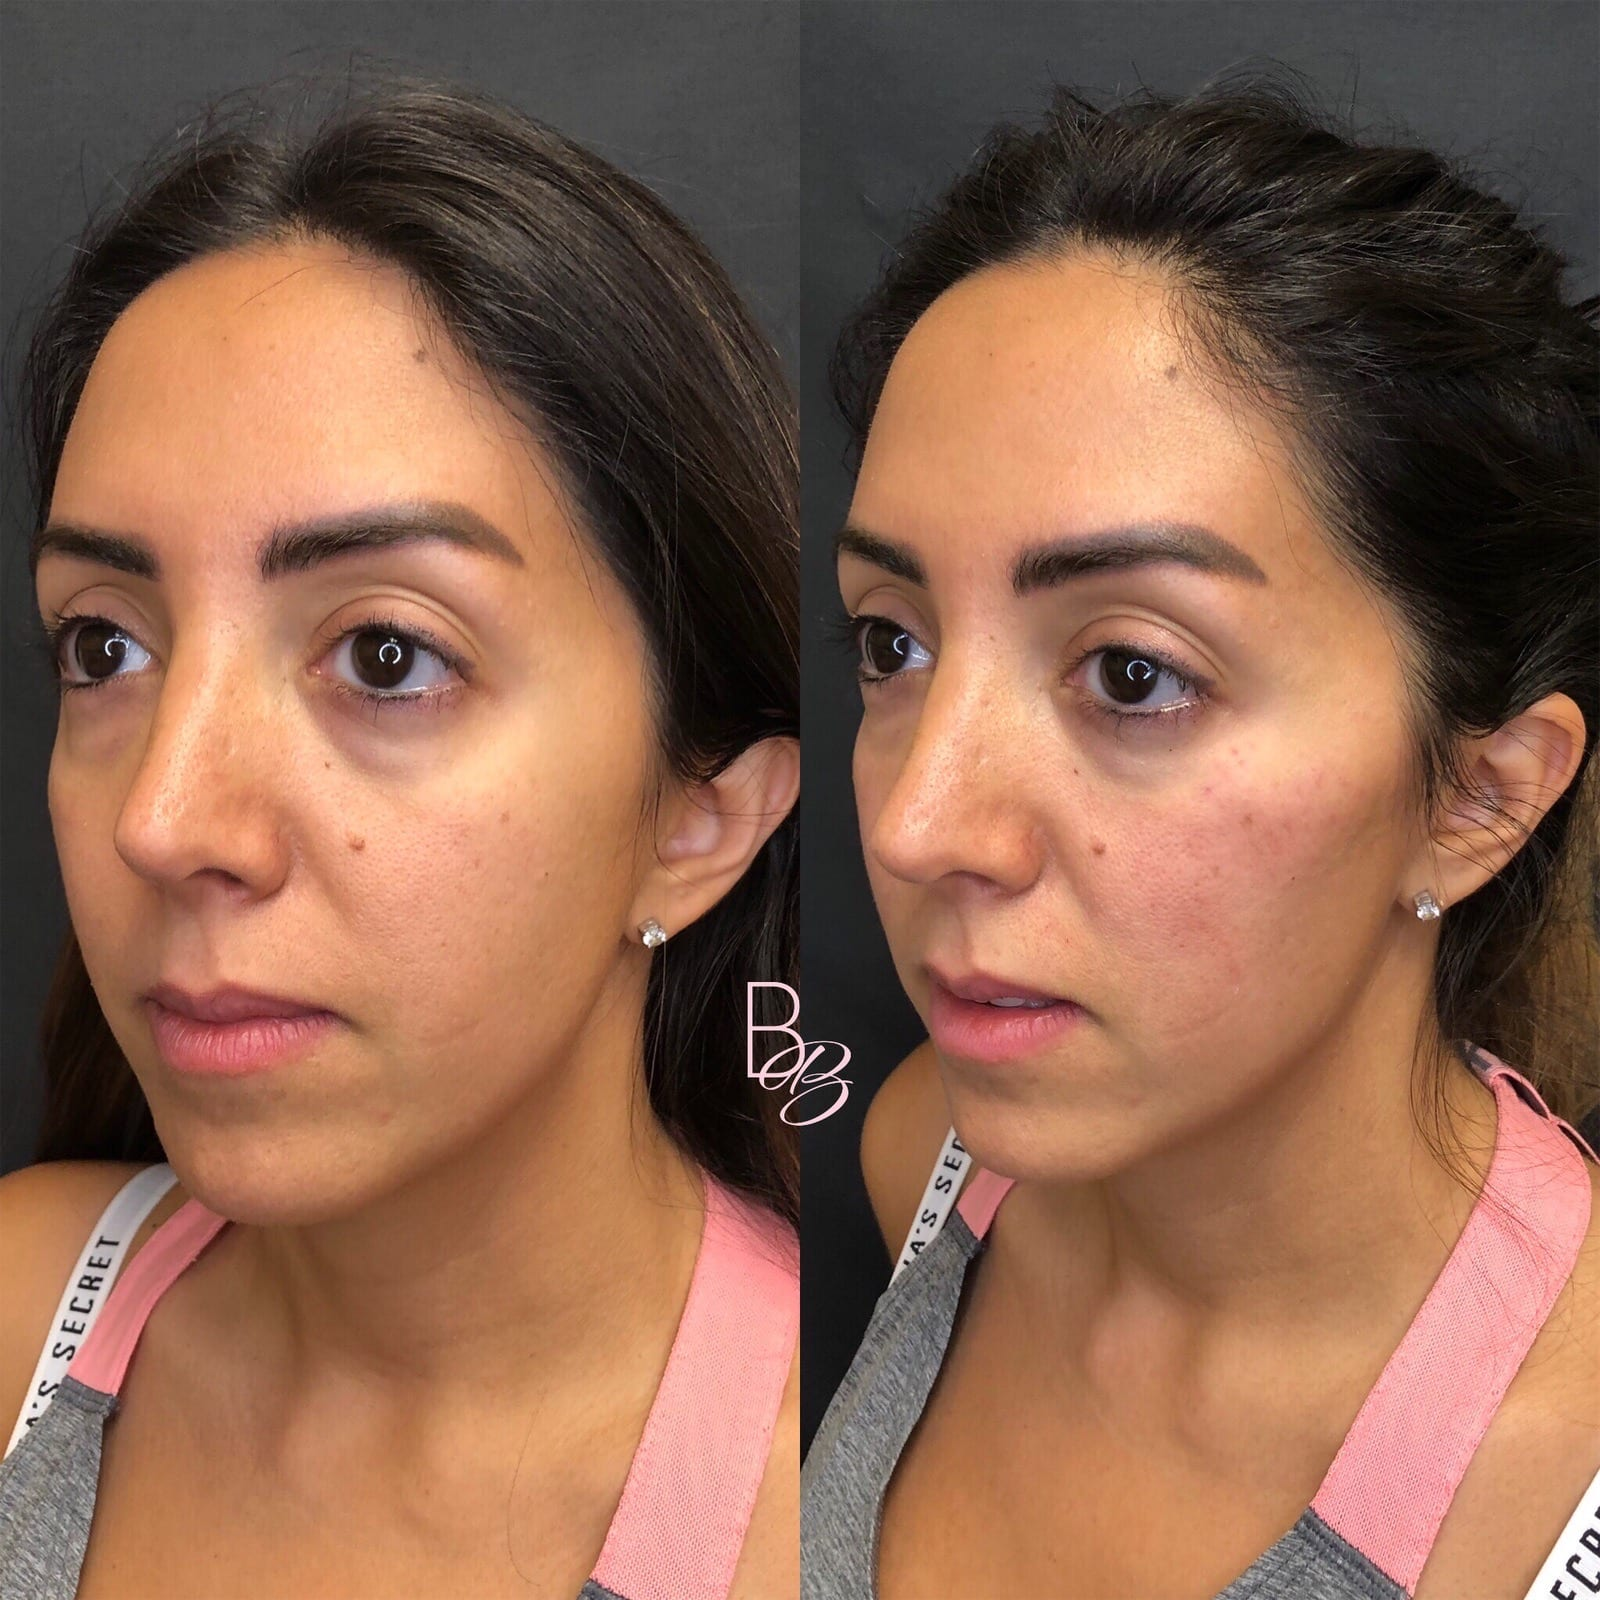 38 y/o Middle Eastern F immediately after injecting 2 syringes of voluma to her cheek bones for mid-face lift, contour and definition.